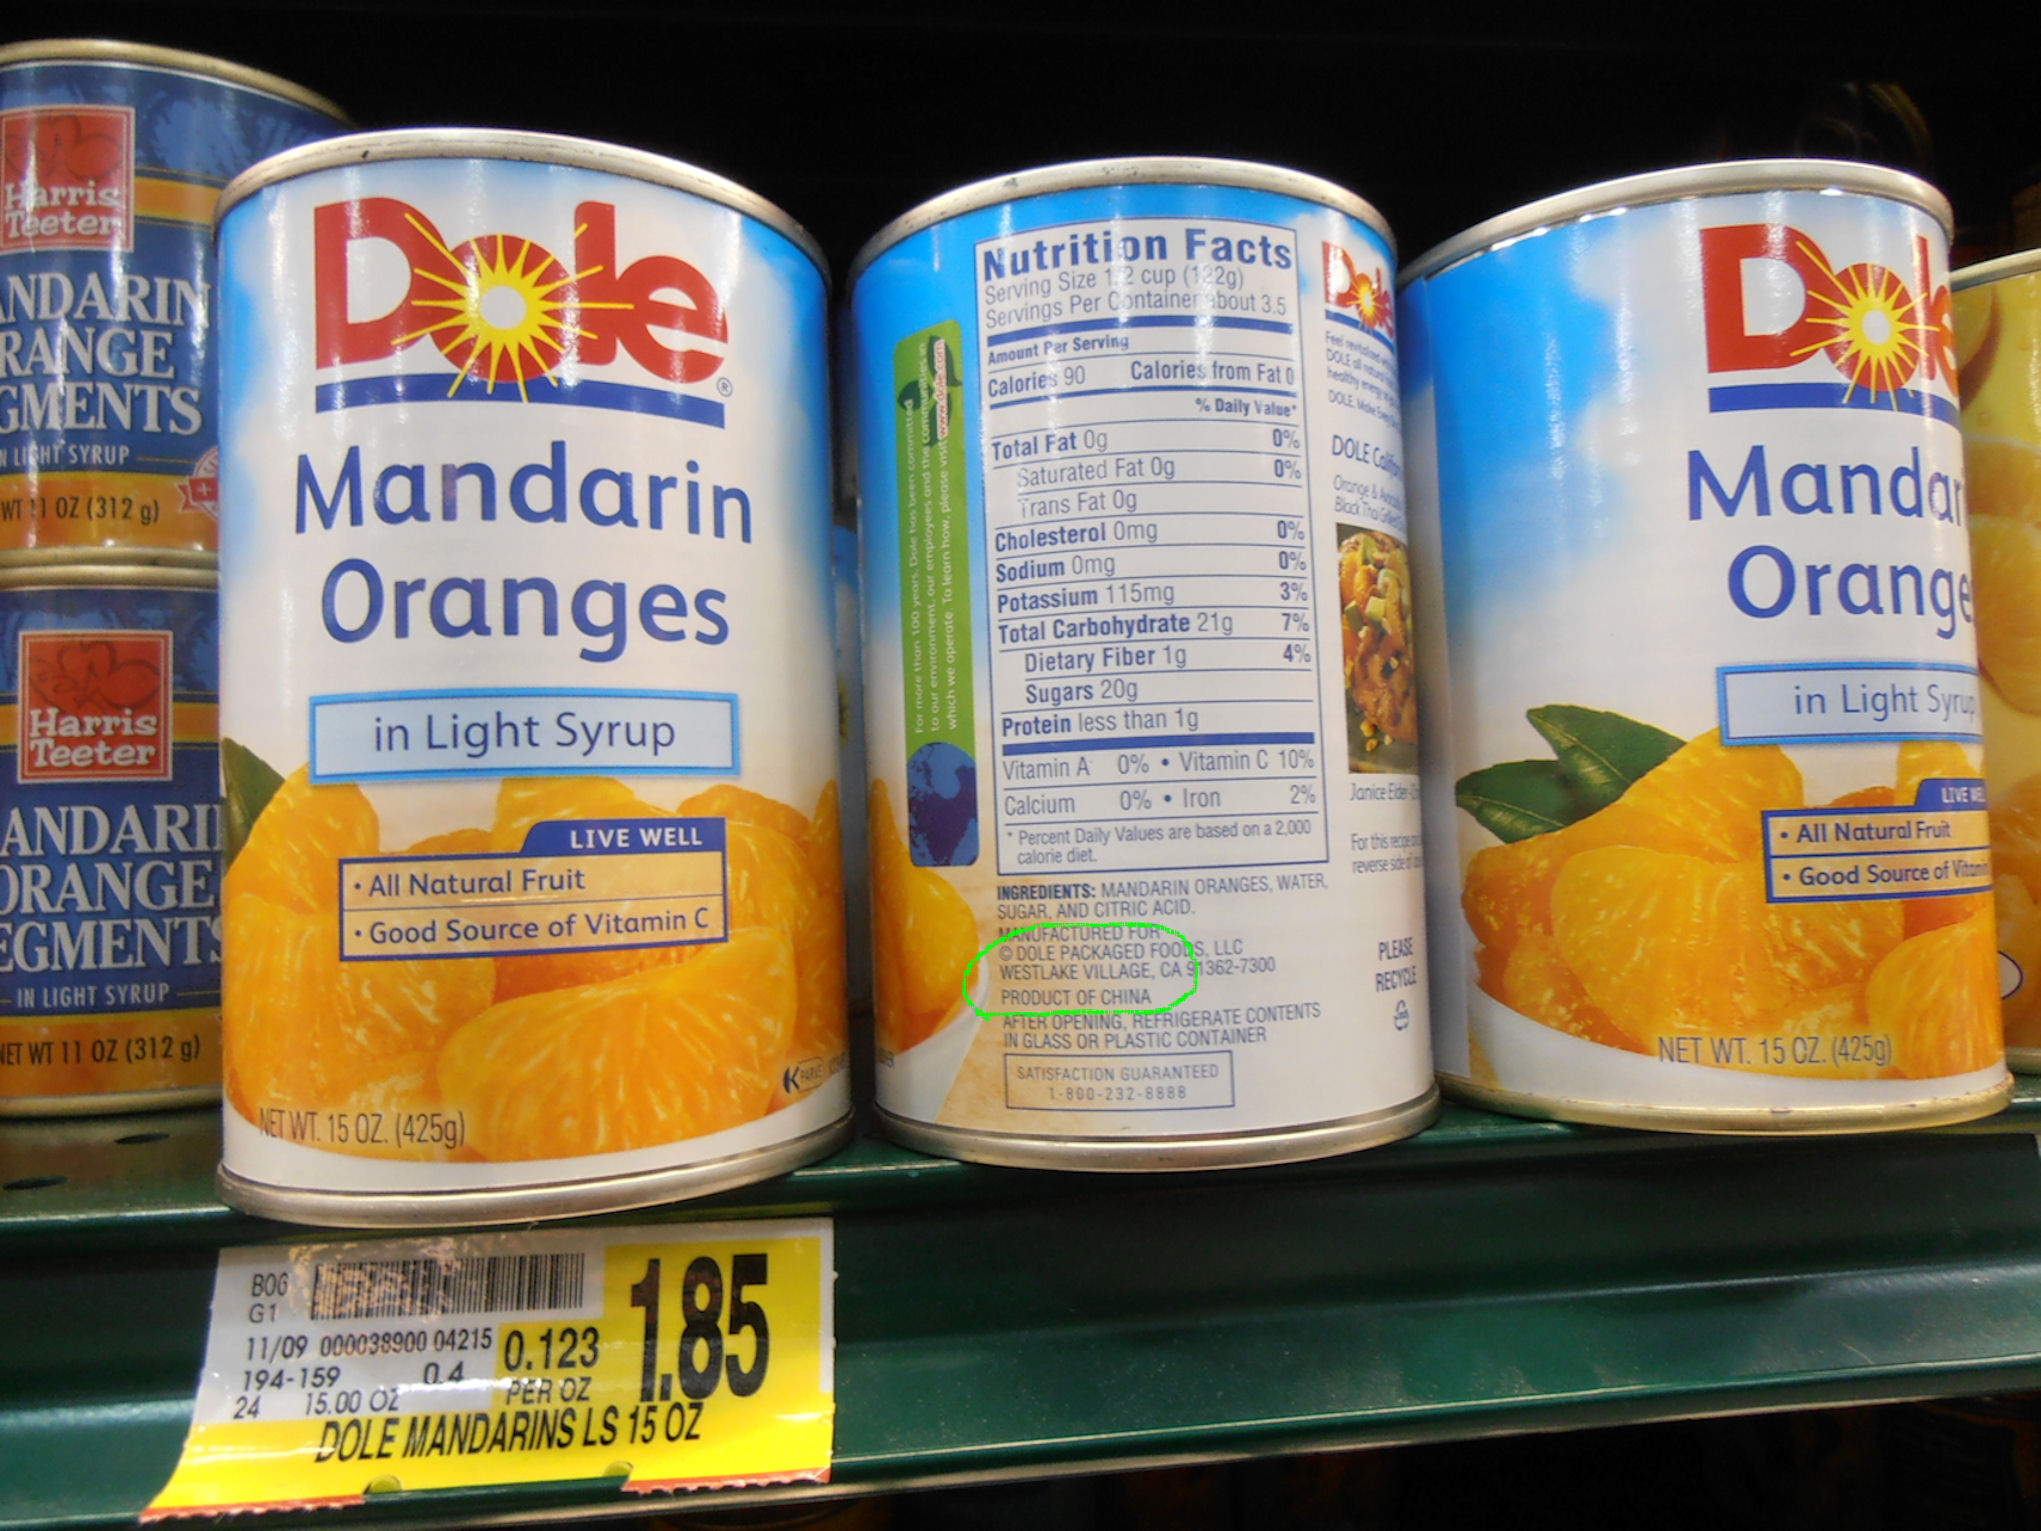 Major food companies import food from China.  Did you know many of the mandarin oranges are grown in China?  Research and you will find many issues with Chinese agricultural practices and government practices that condone or attempt to hide the issues. Dole Mandarin Oranges come from China.  Does that motivate you to go purchase this product?